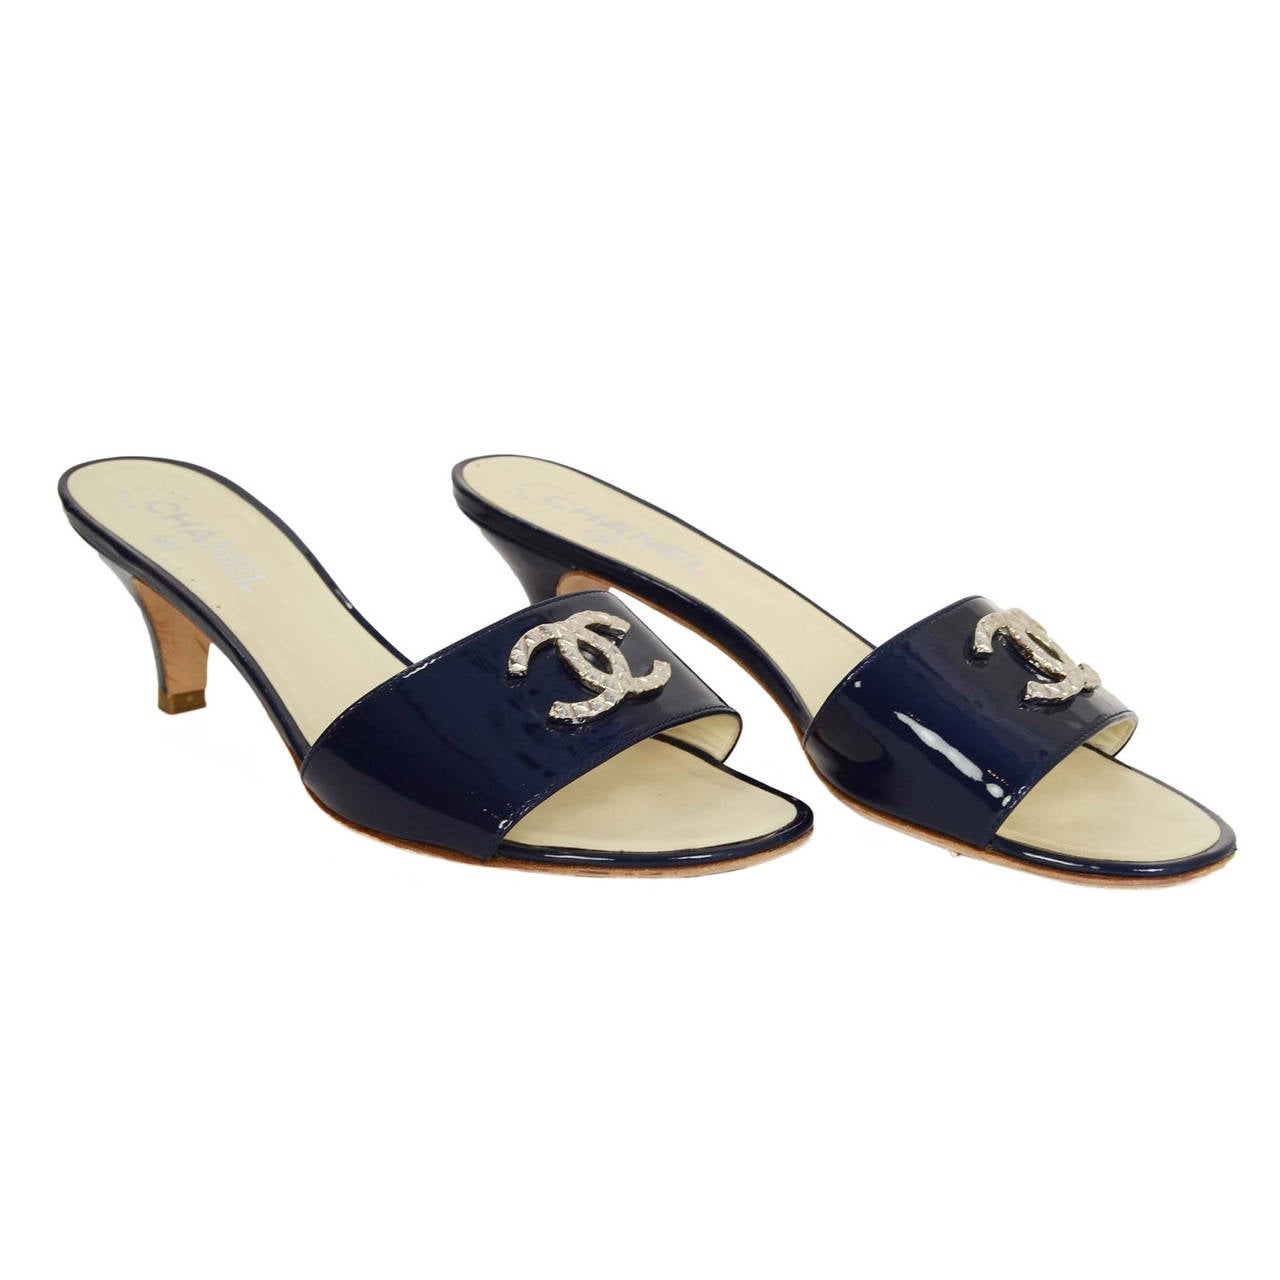 Chanel Navy Patent Mule Sandals Sz 38 For Sale At 1stdibs